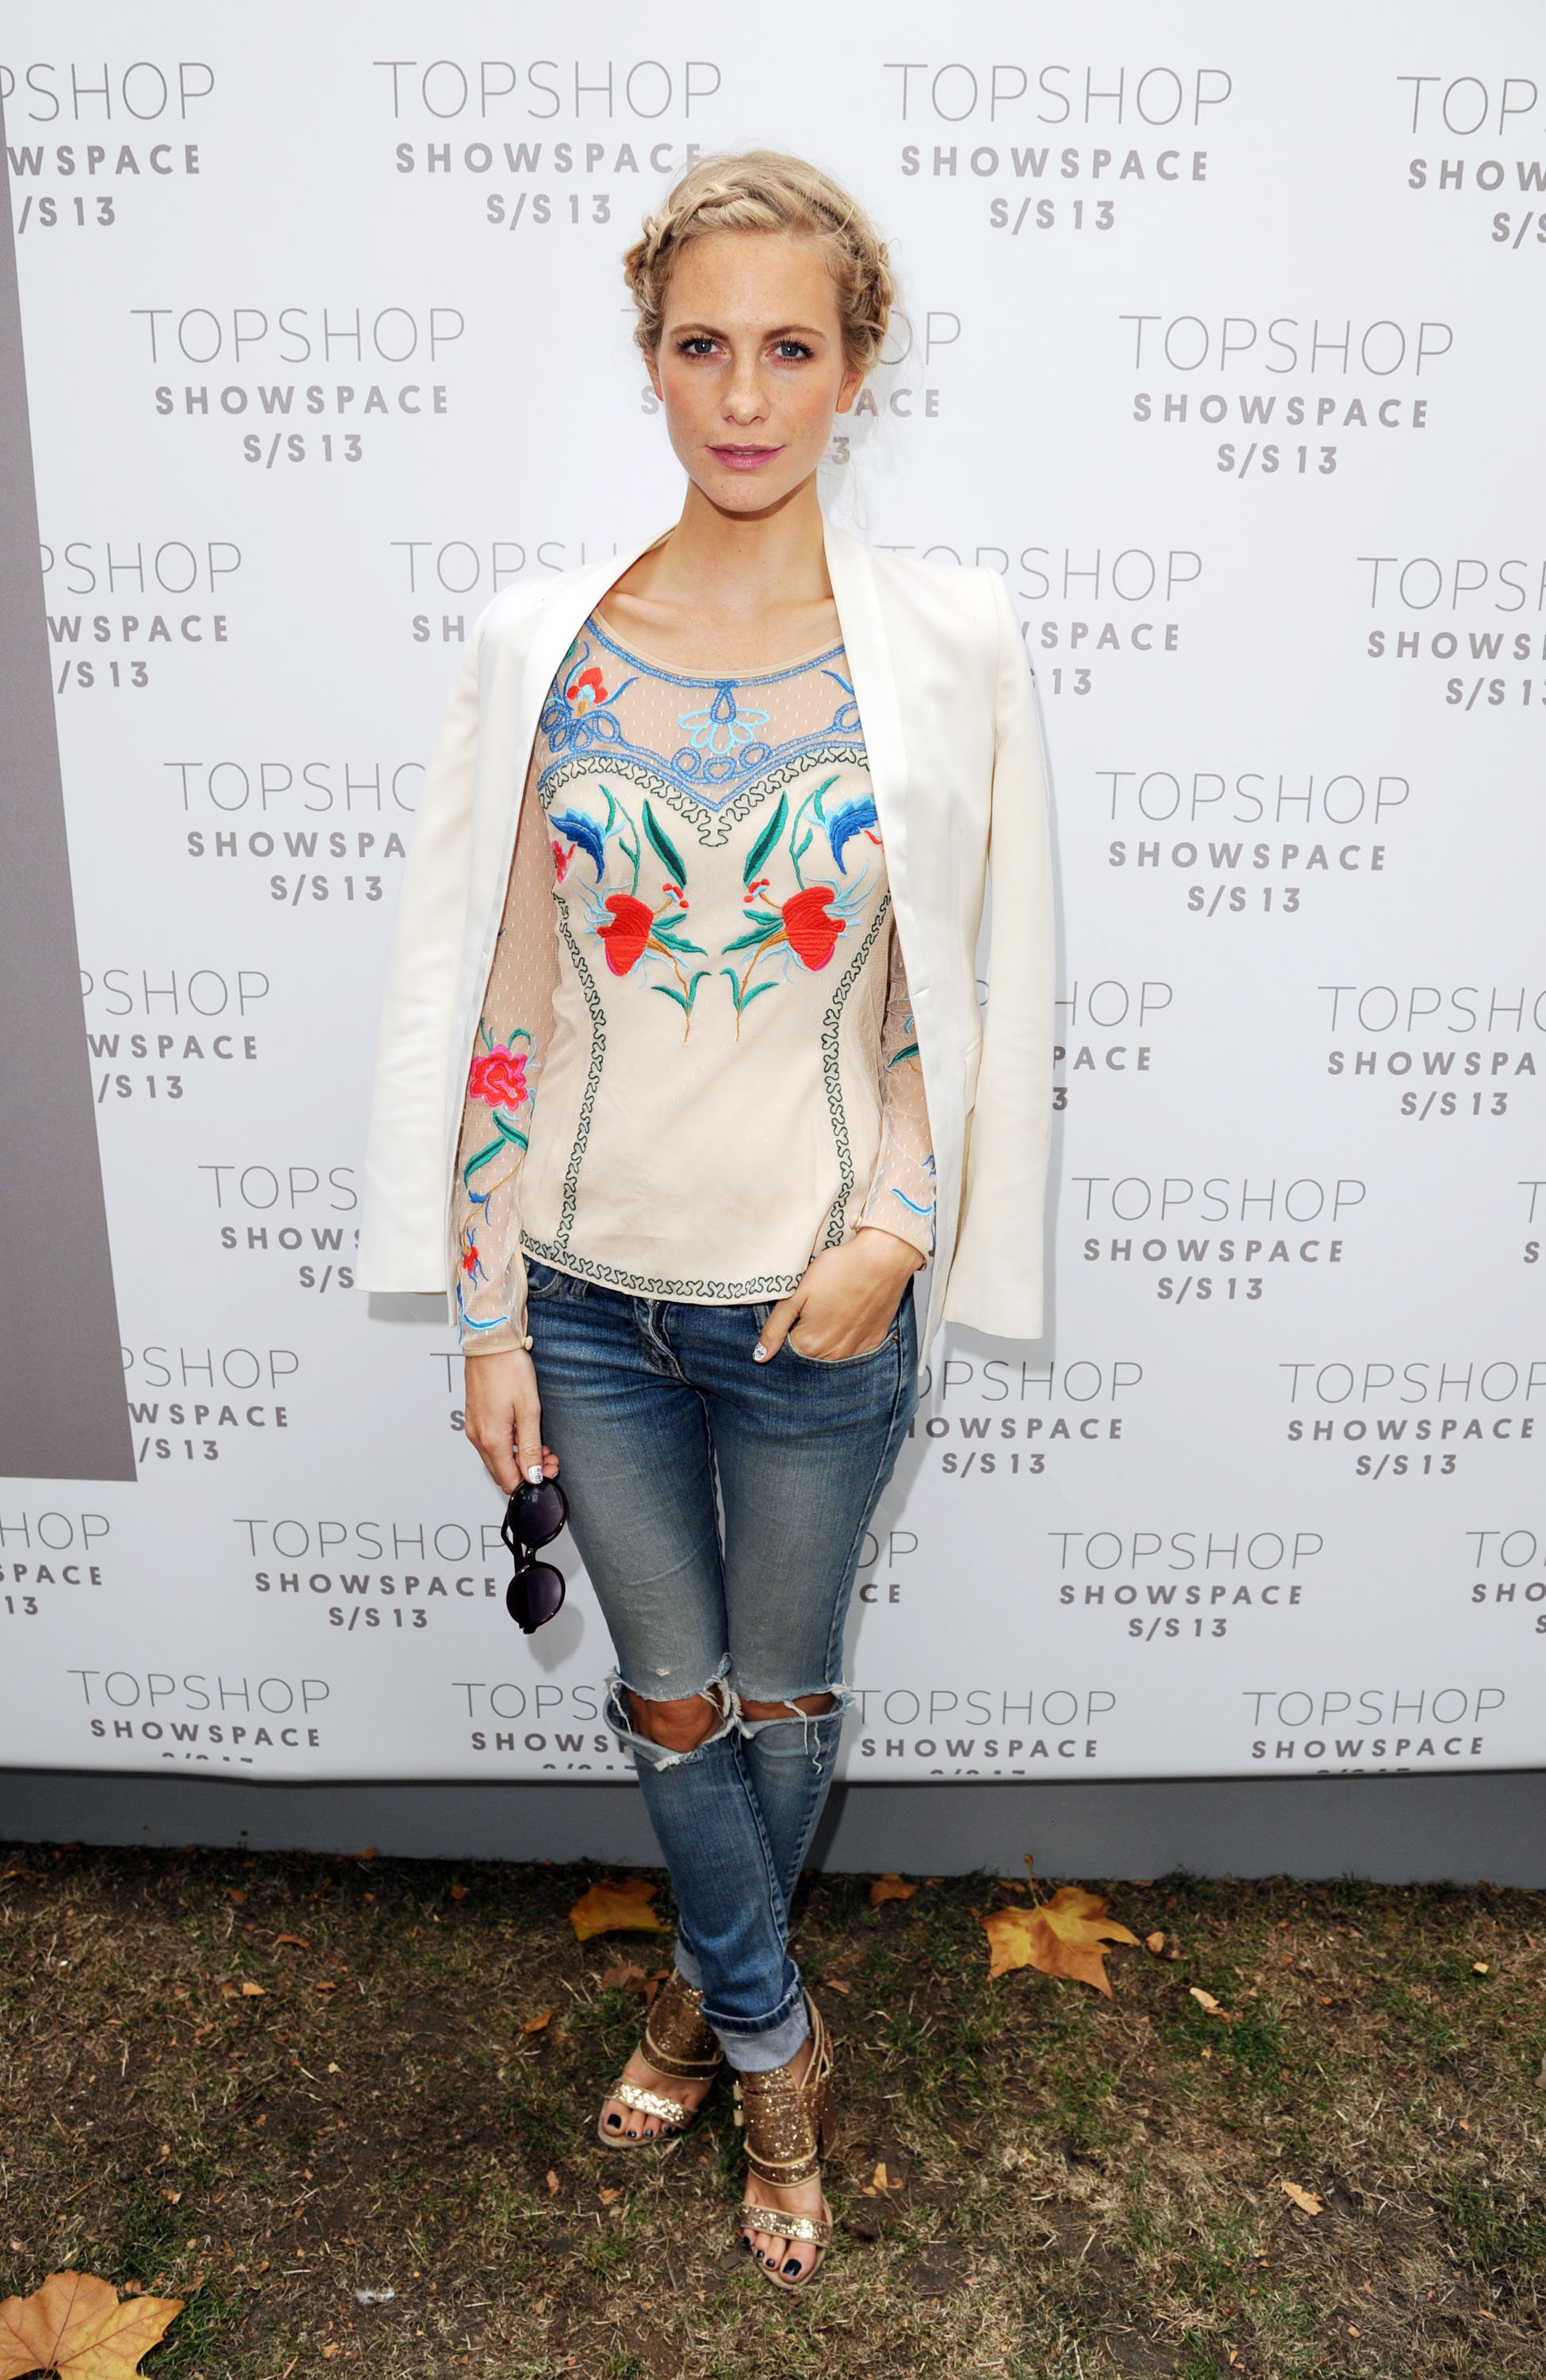 Poppy Delevingne paired an embroidered top with a sleek white blazer at U